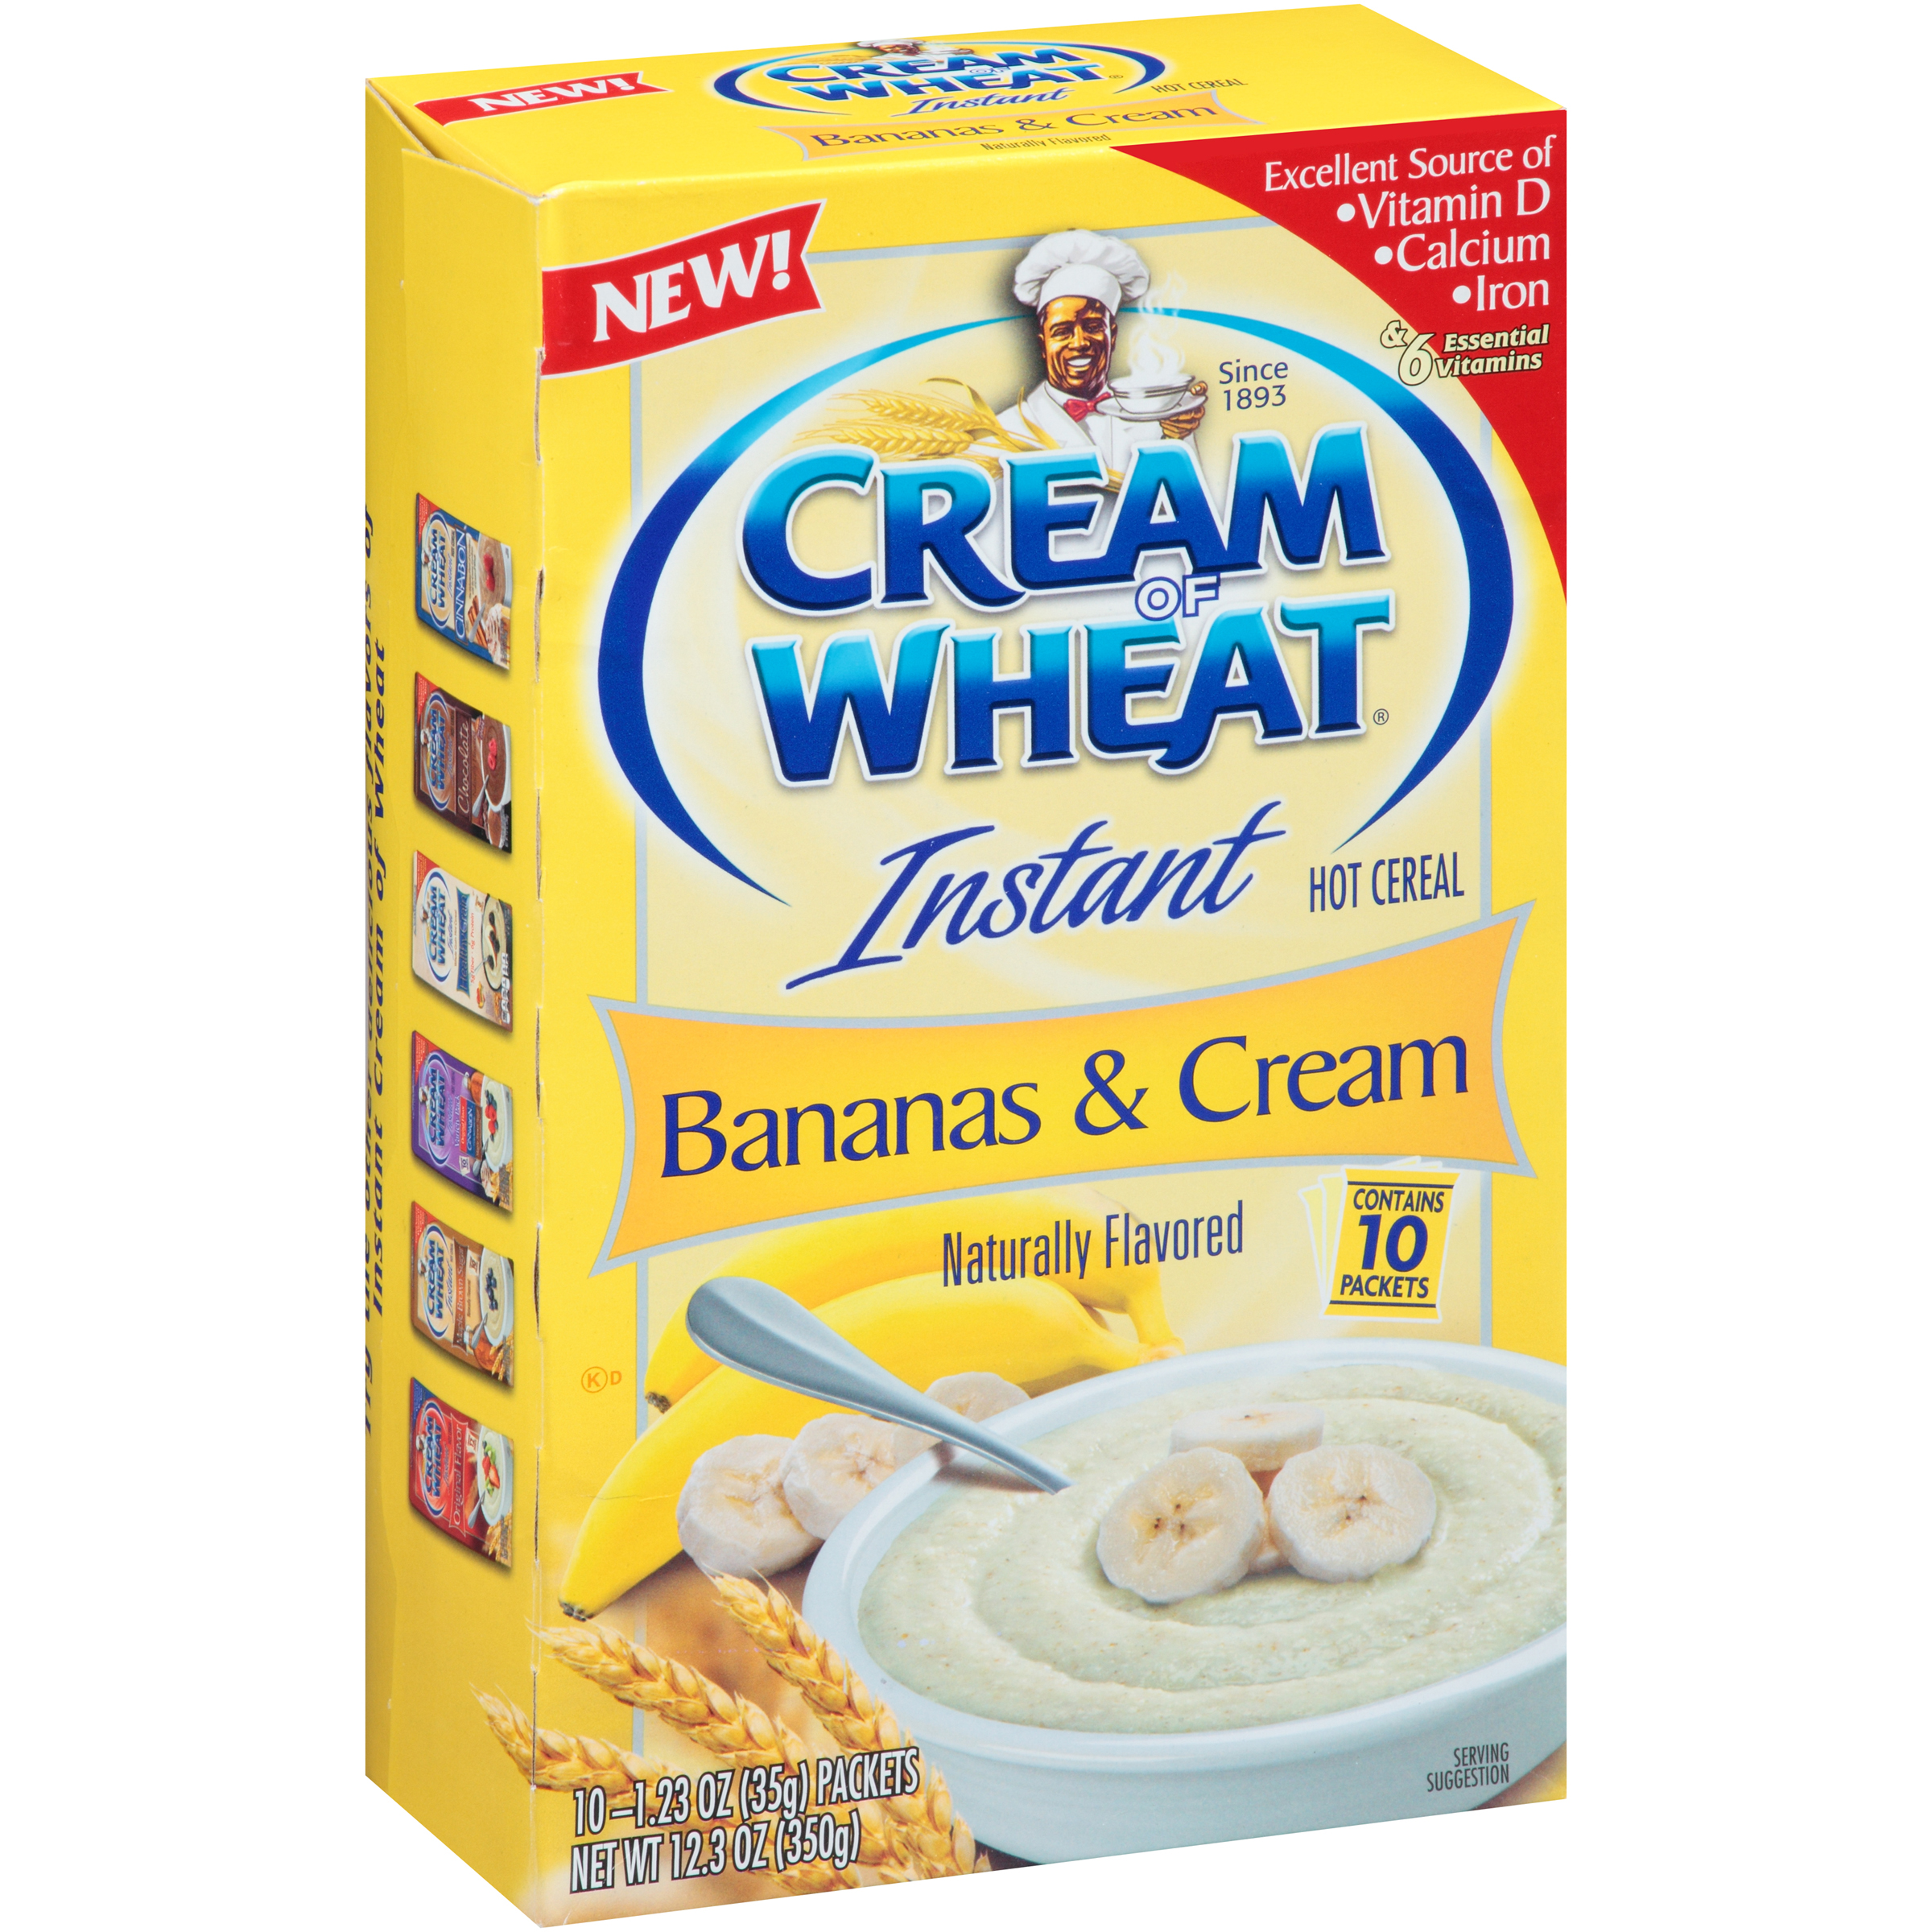 Cream of Wheat Instant Hot Cereal Bananas & Cream - 10 CT1.23 OZ